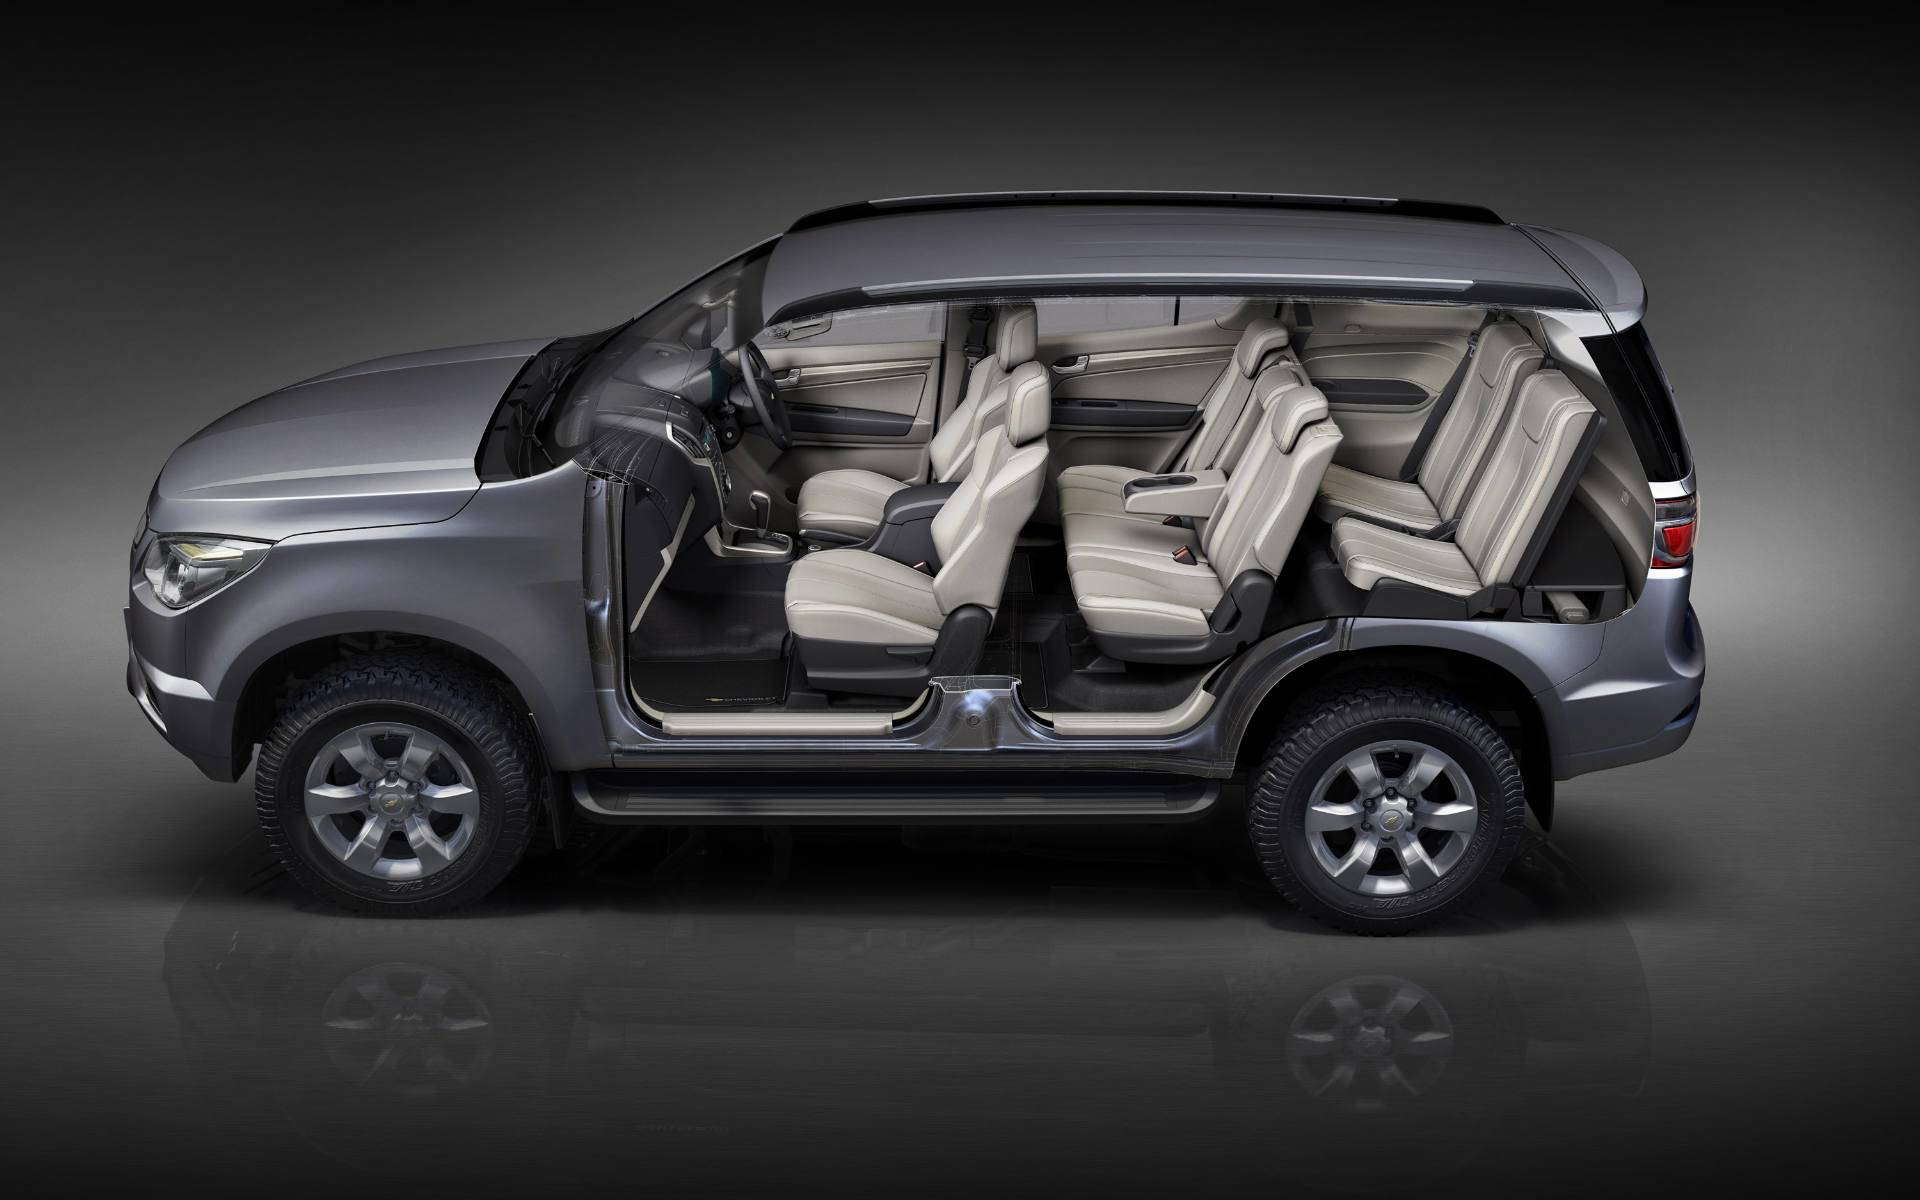 chevrolet trailblazer wallpaper background